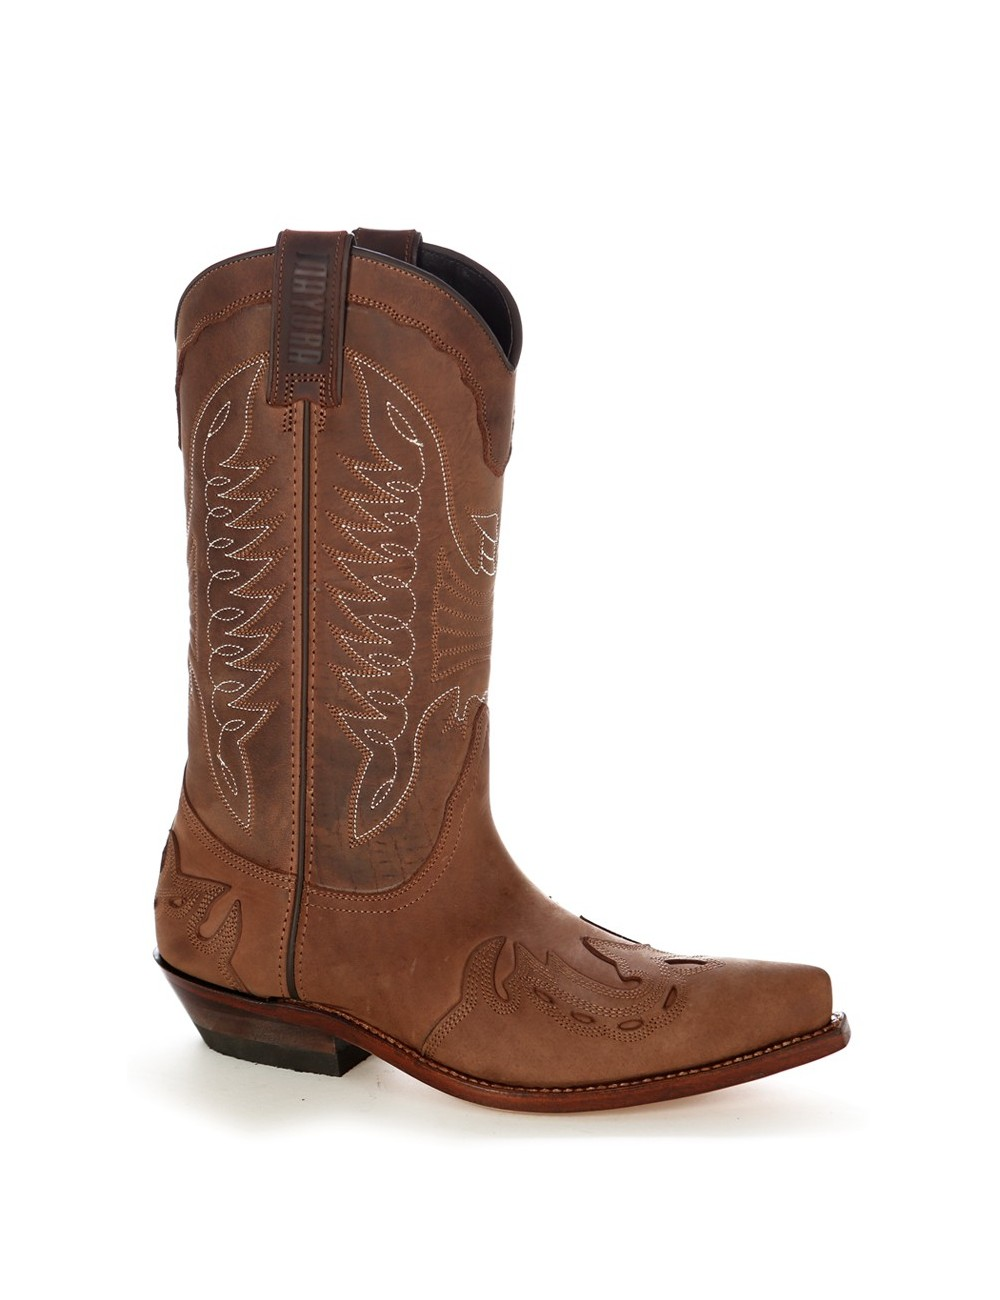 Santiags mexicaines cuir huilé - Bottes santiags country artisanales